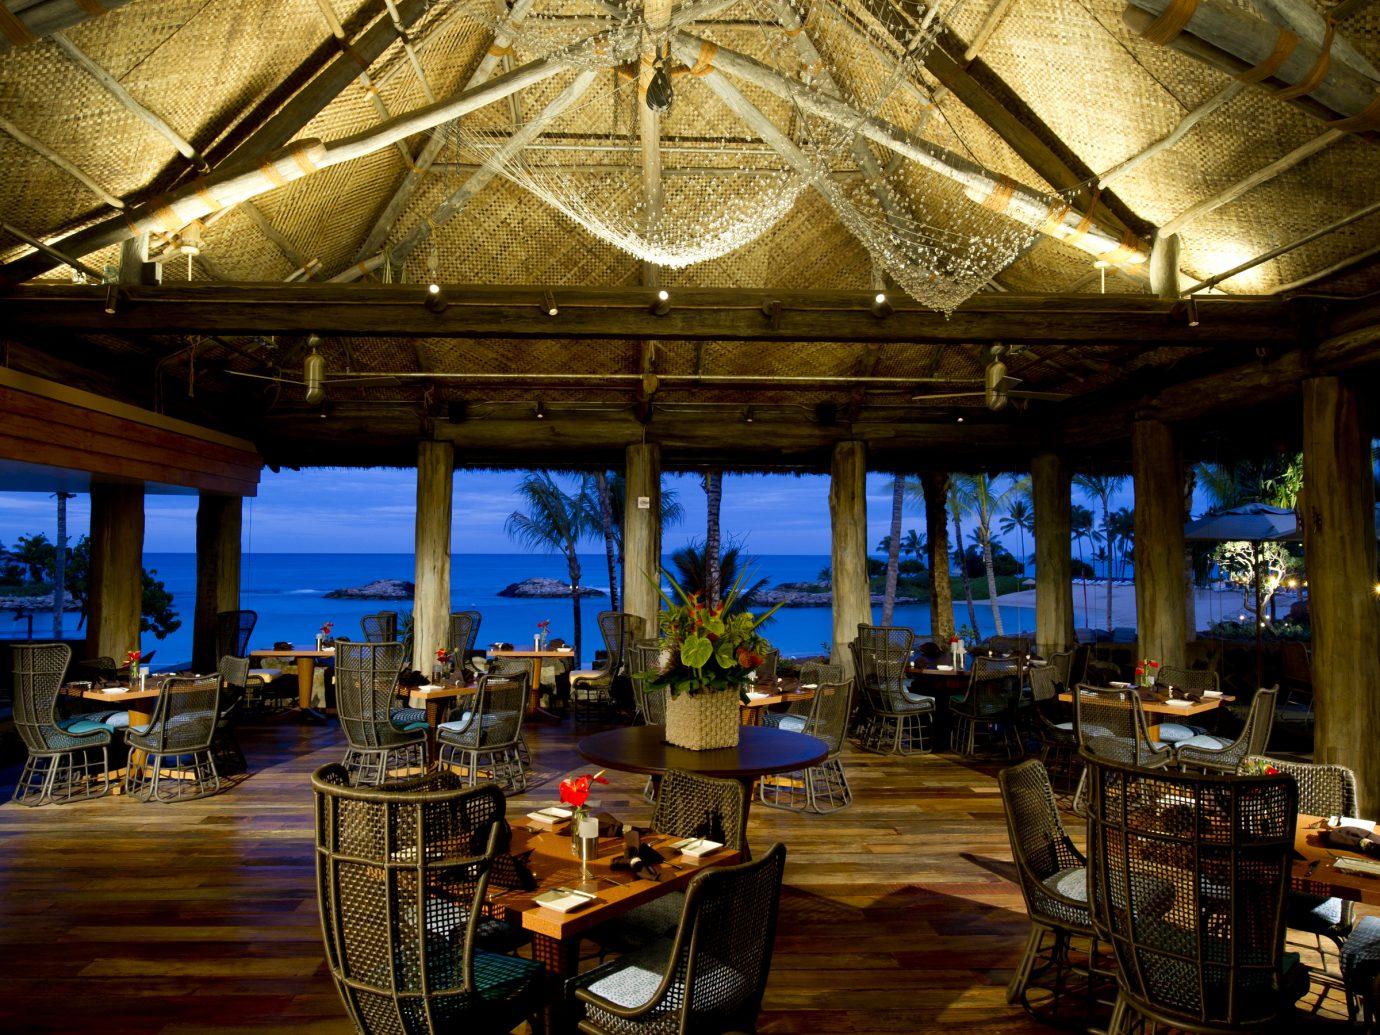 AMA'AMA BEACH RESTAURANT at Aulani Resort